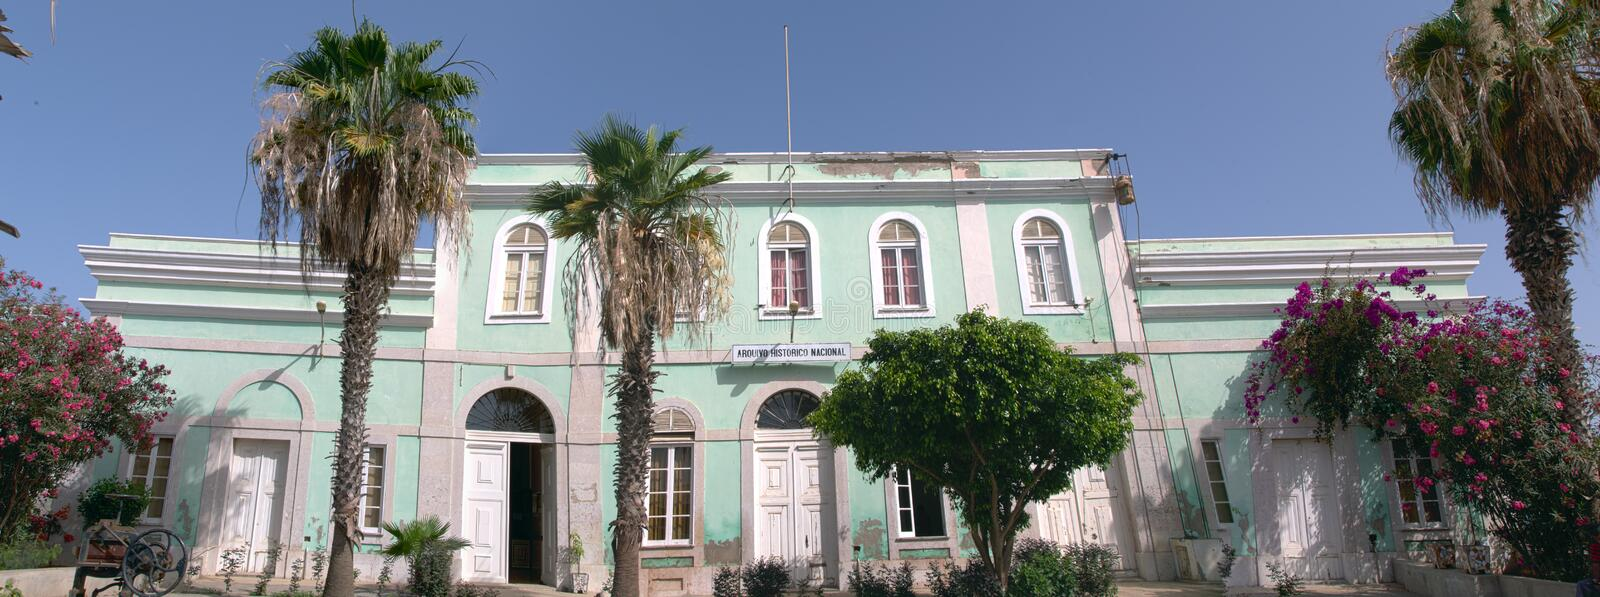 The National Archives of Cape Verde. Praia, Cape Verde. May 11, 2015: The National Archives of Cape Verde. Panoramic view royalty free stock images